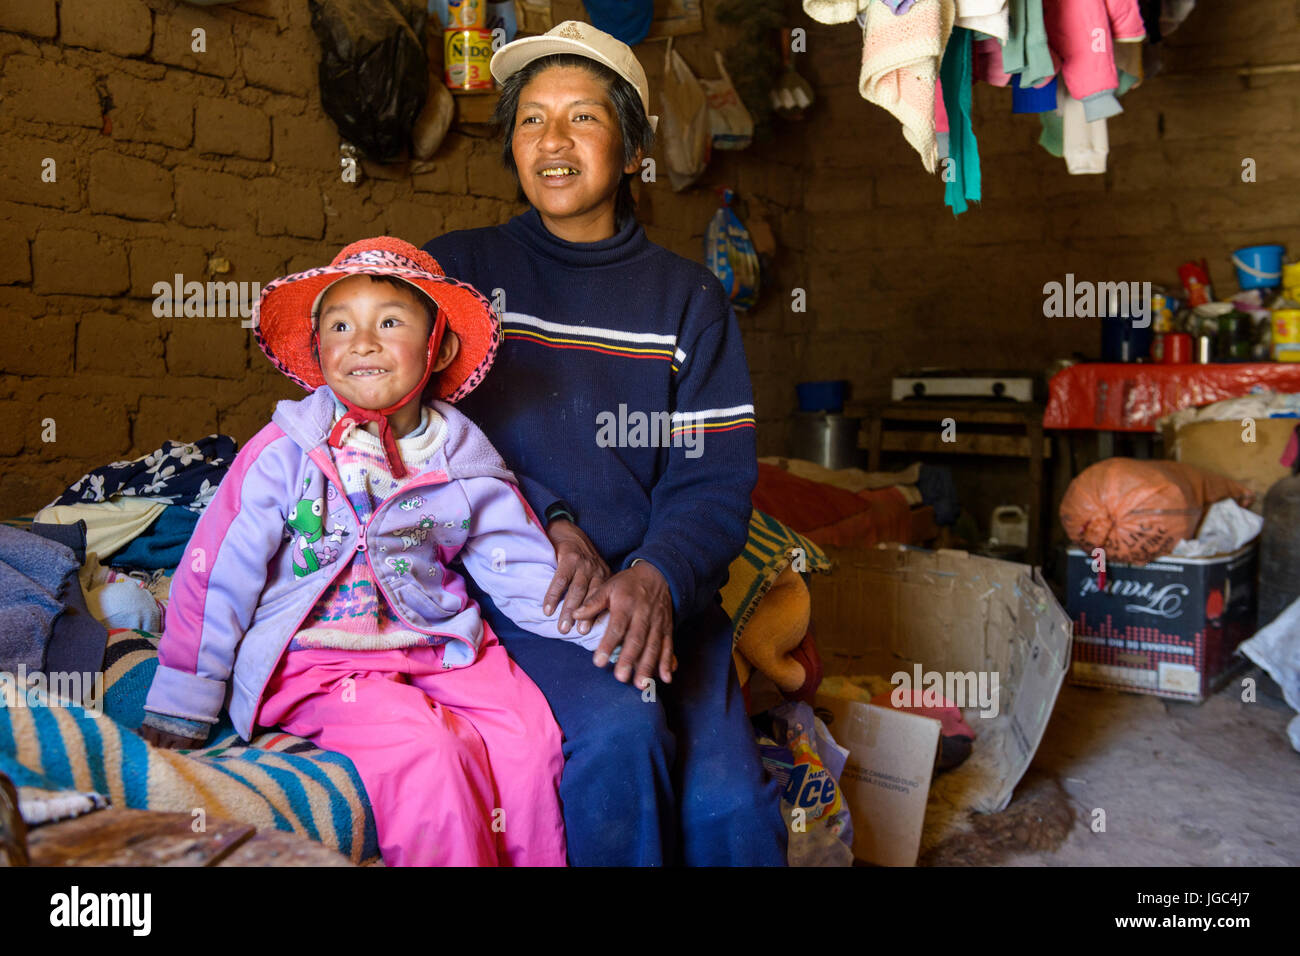 Indigenous people of the Puna region, northern Argentina - Stock Image